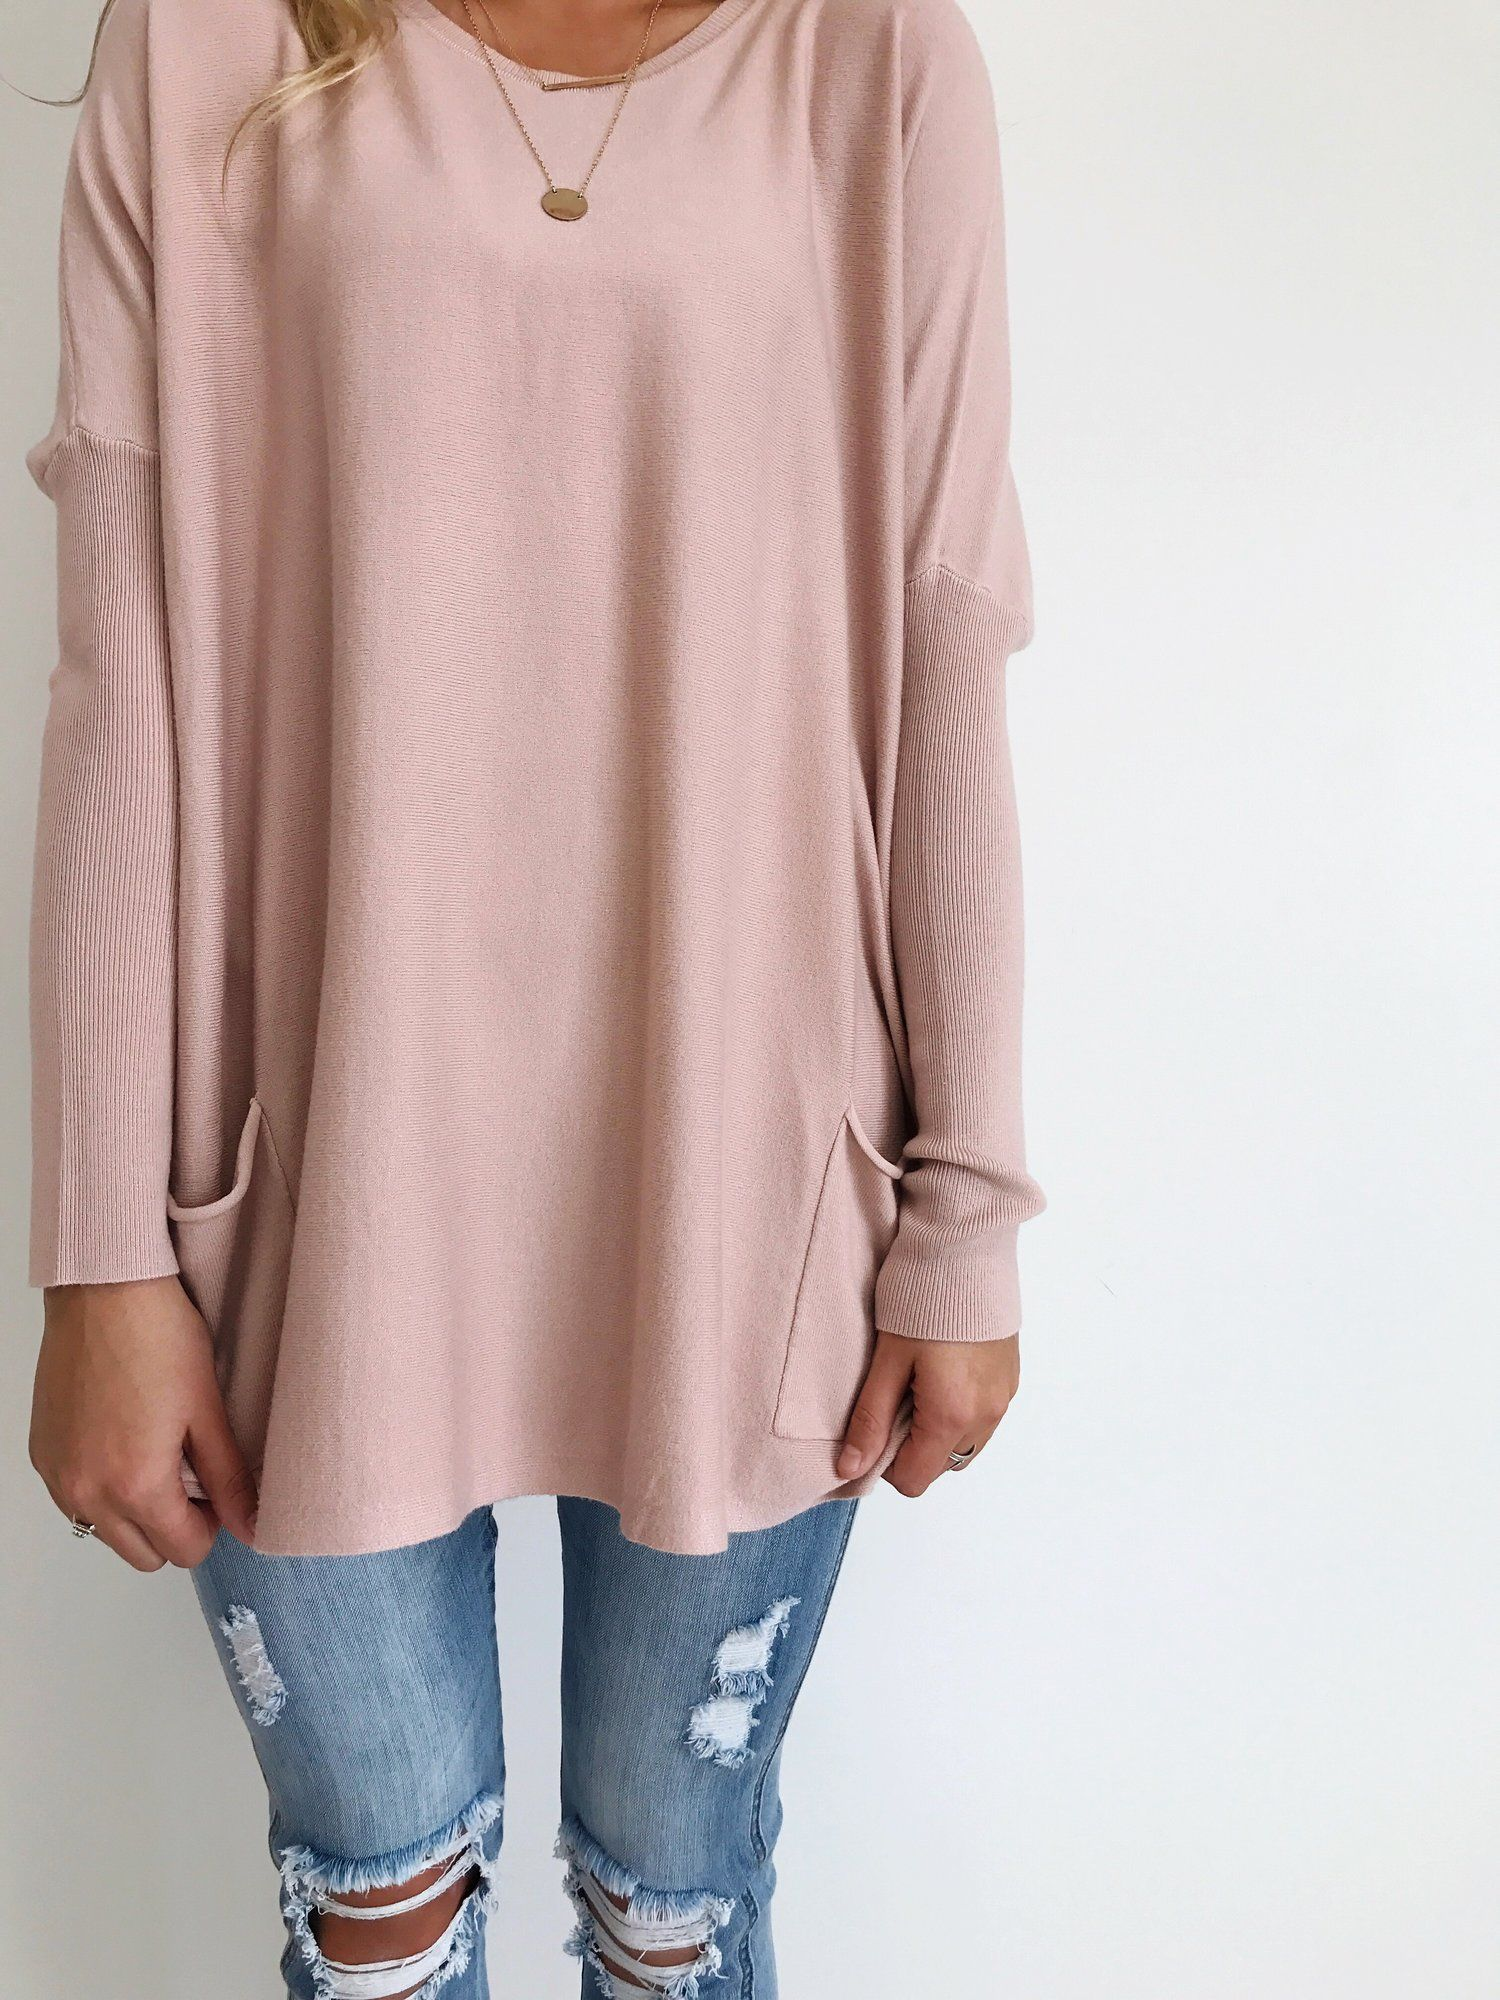 Pink sweater dress outfit  Pin by Anna Claire Williams on Fashion  Pinterest  Clothes Dream